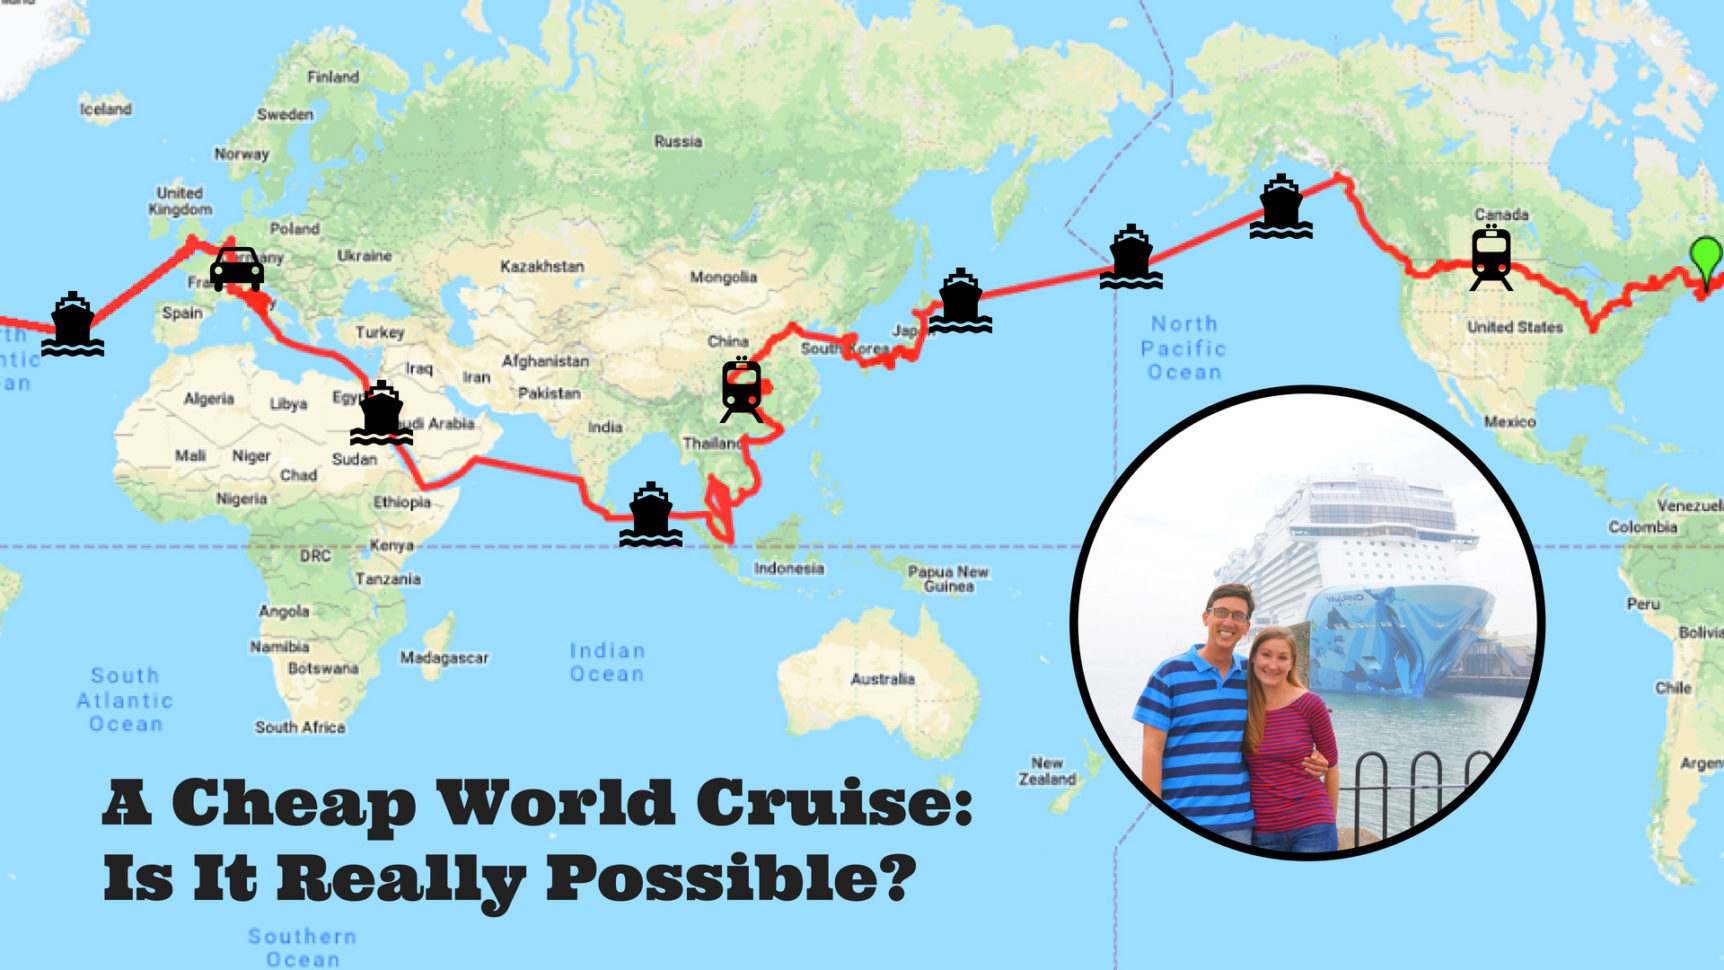 Cruise Budget Spreadsheet In A Cheap World Cruise? How We Used A Travel Trick To Afford The Voyage